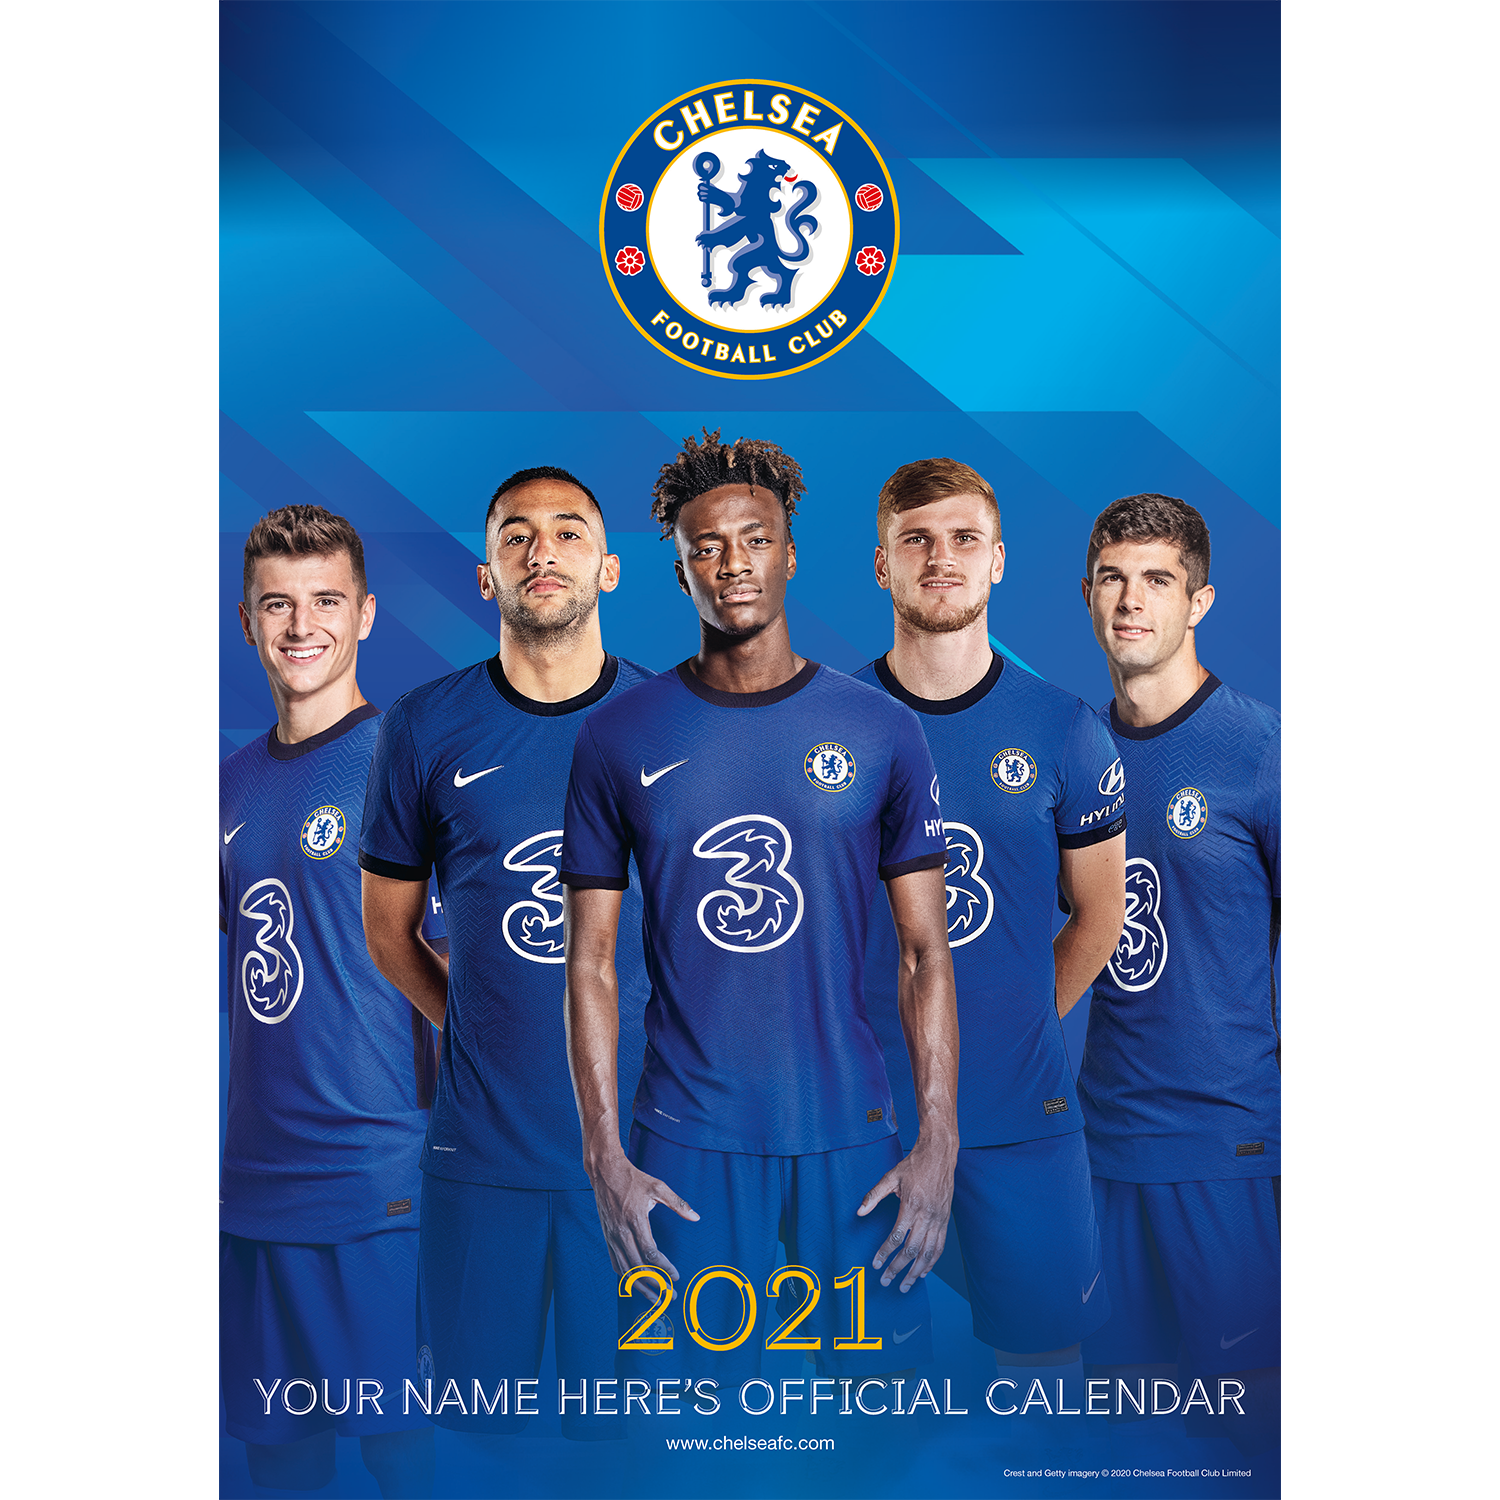 Personalised Chelsea Football Club 2021 A3 Wall Calendar